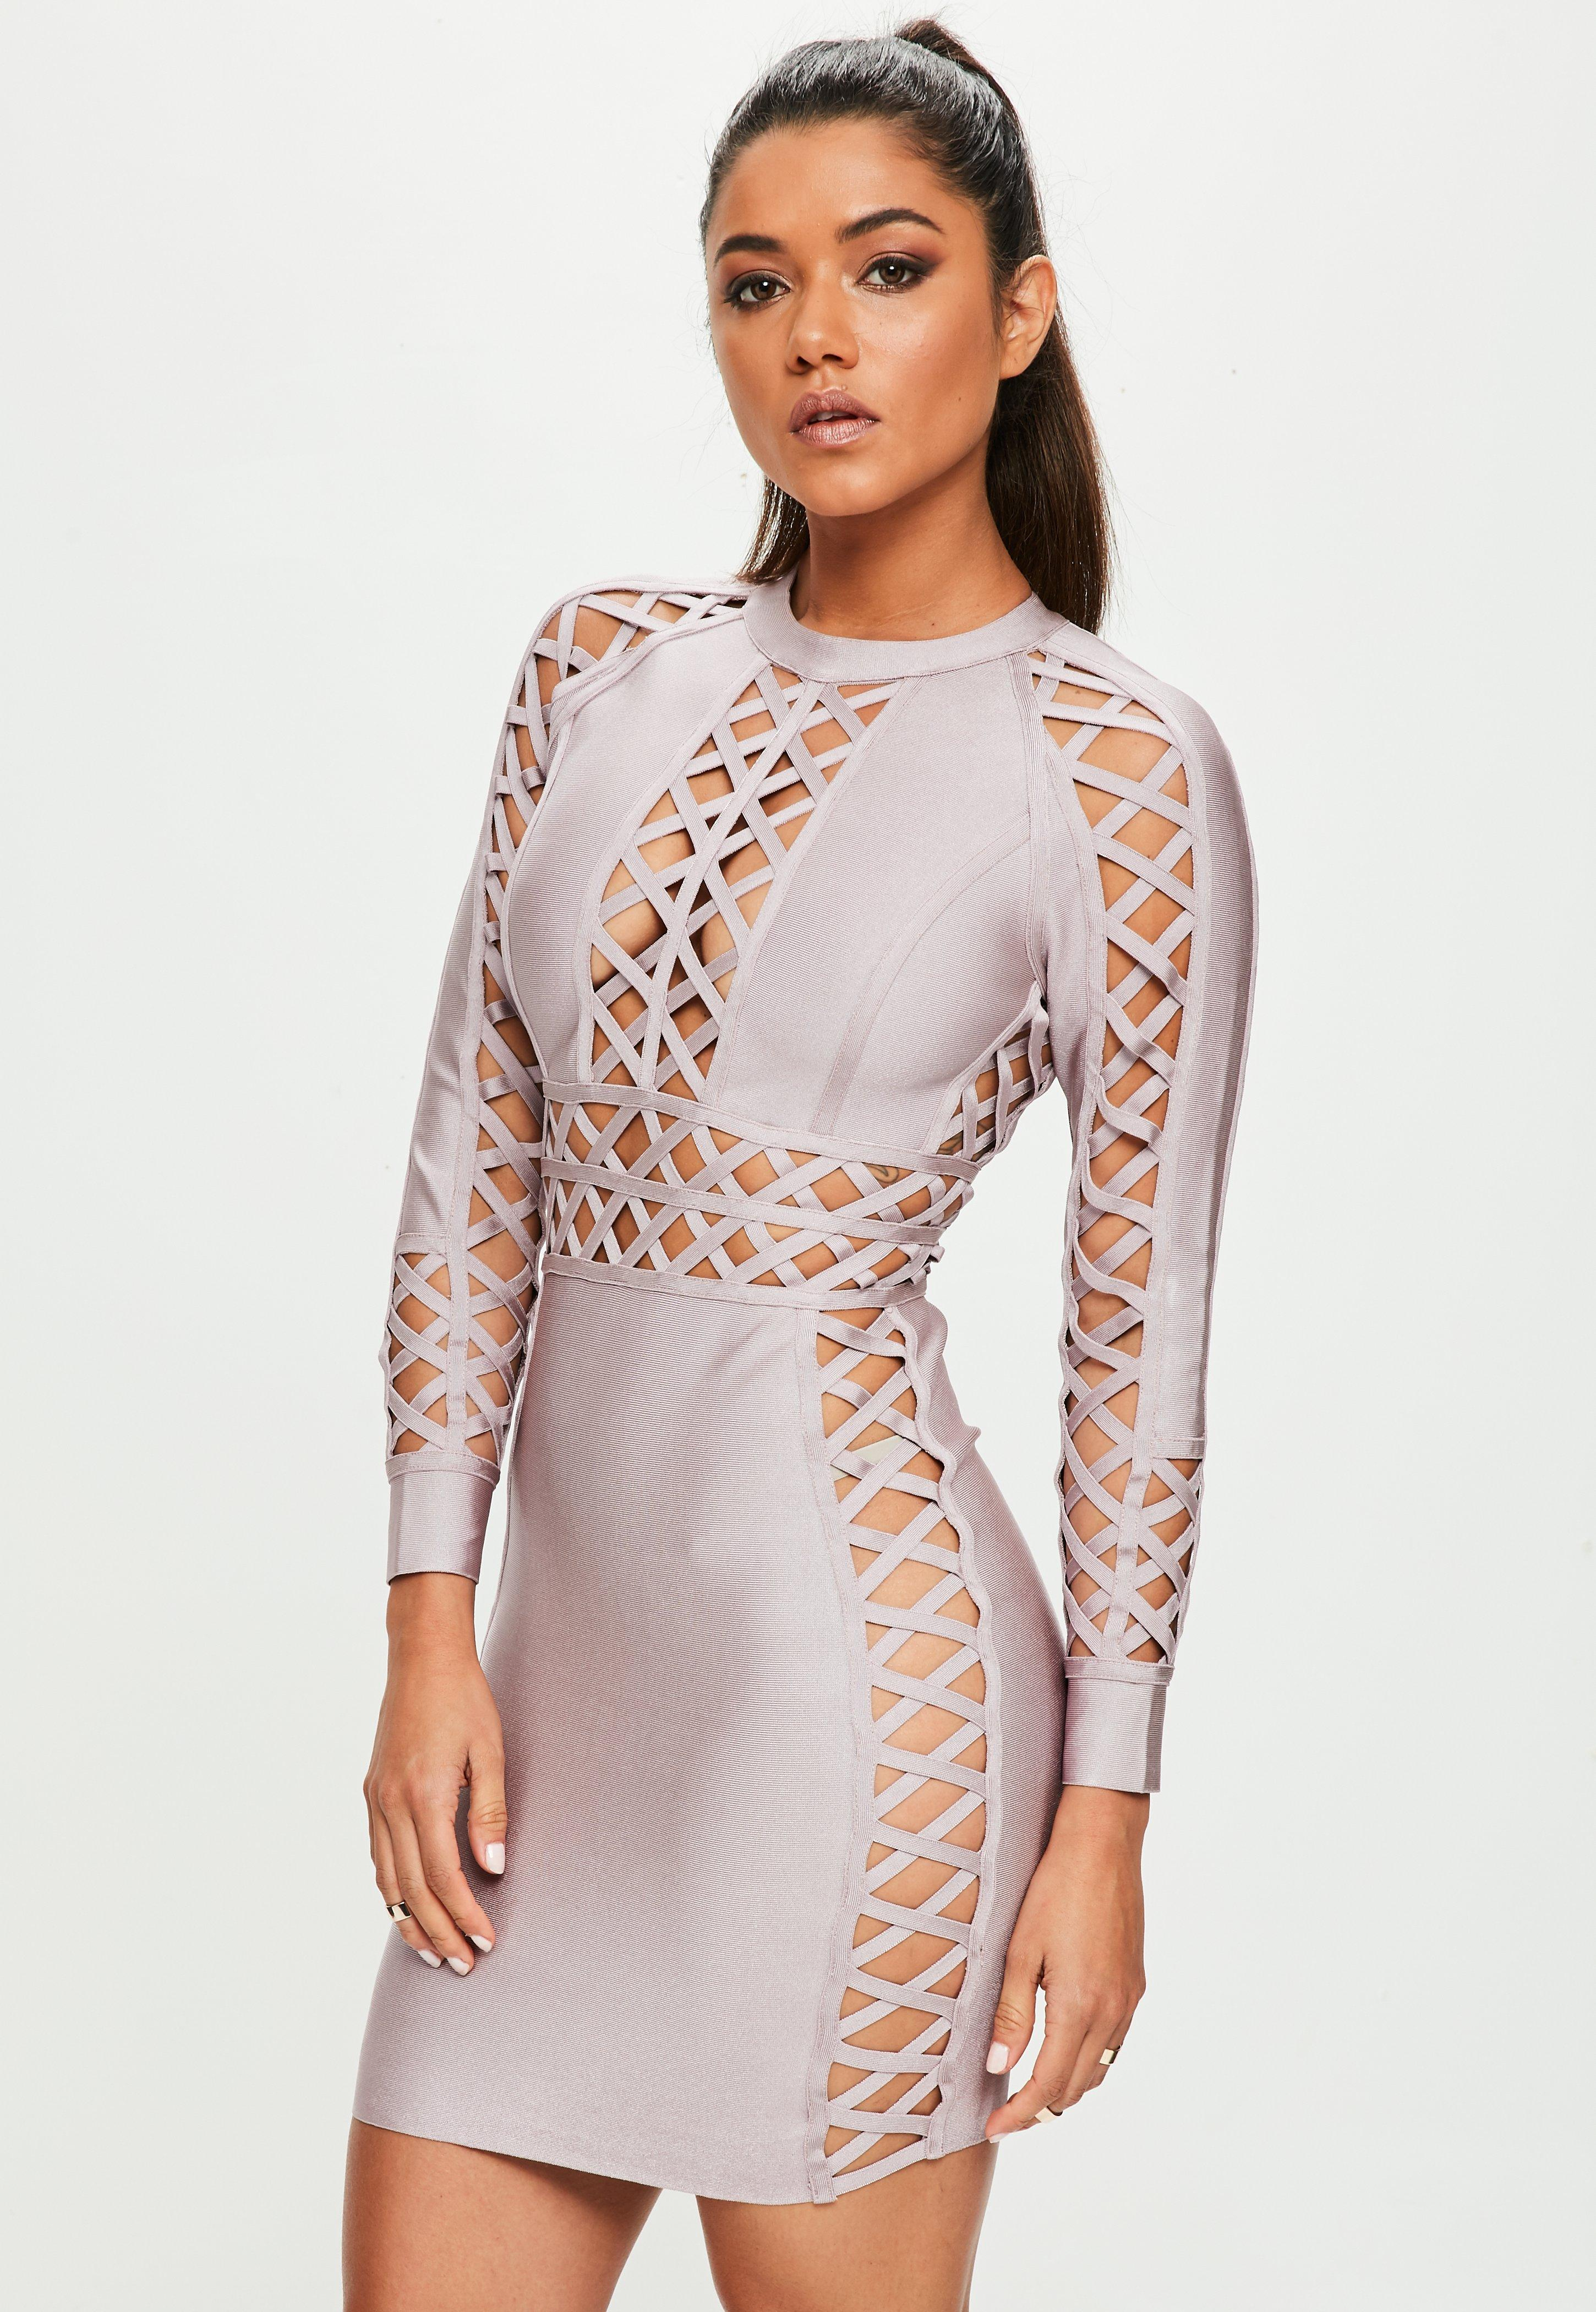 Fashion Lady Round Neck Longsleeve Woven Cages Blue Mini Bandage Bodycon Dresses Beautiful Dresses For Party From China Online Fashion Style Cheap Online UYqlN9